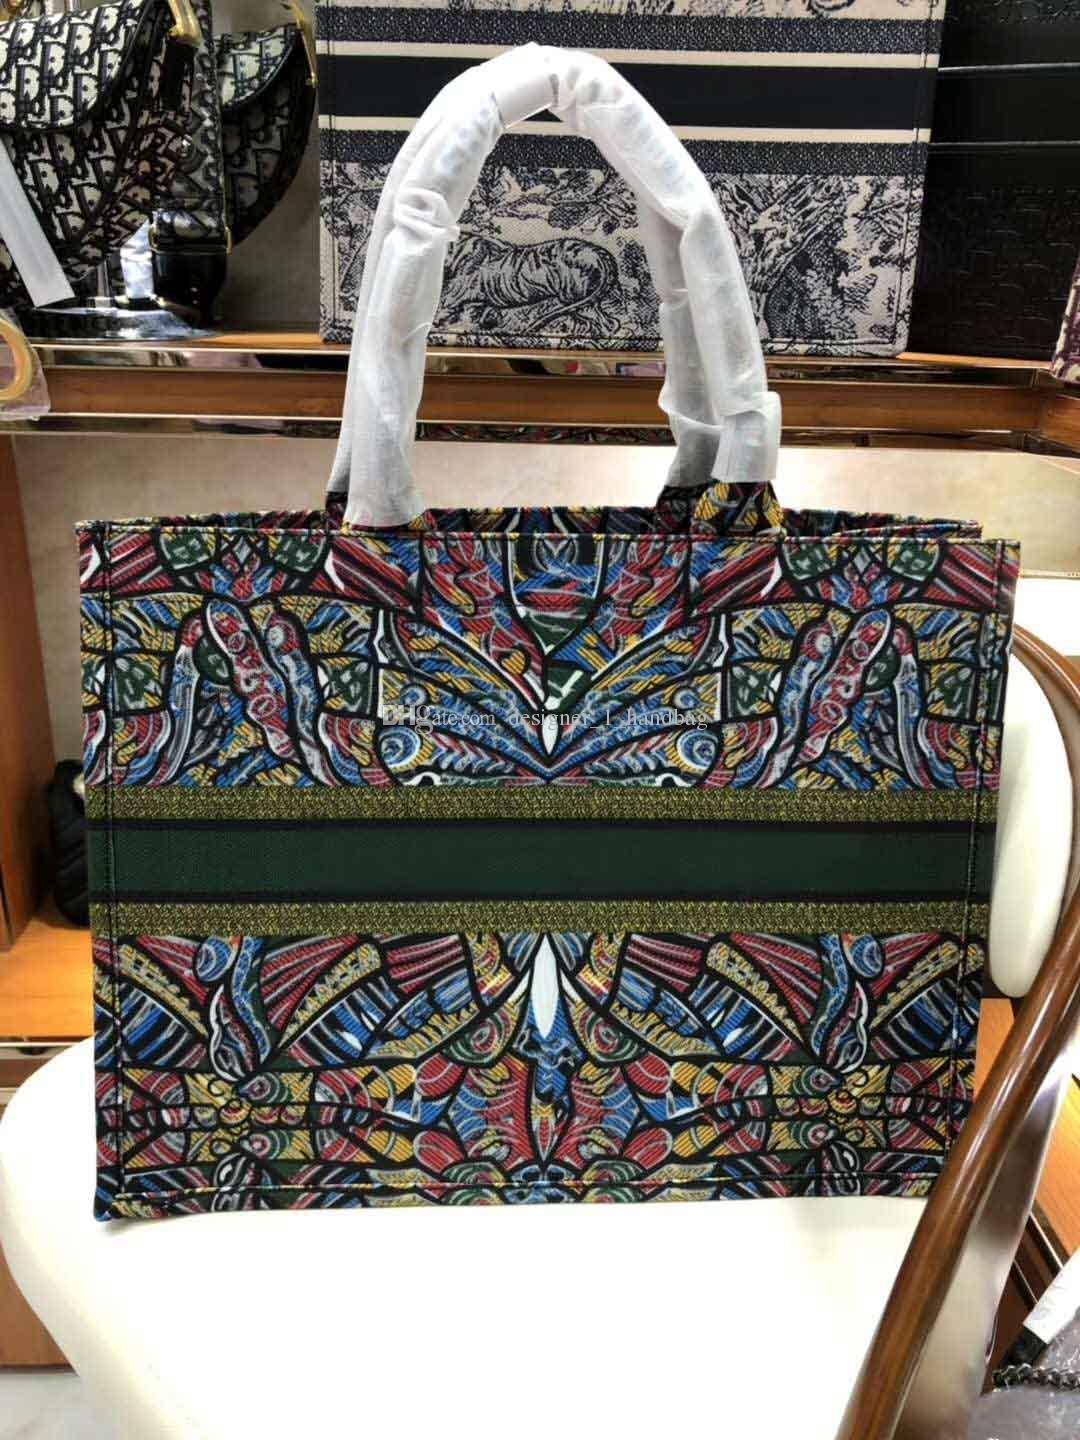 96c19a471003 2018 brand fashion luxury women's handbags printed embroidery canvas  shopping bag French famous designer tote bag